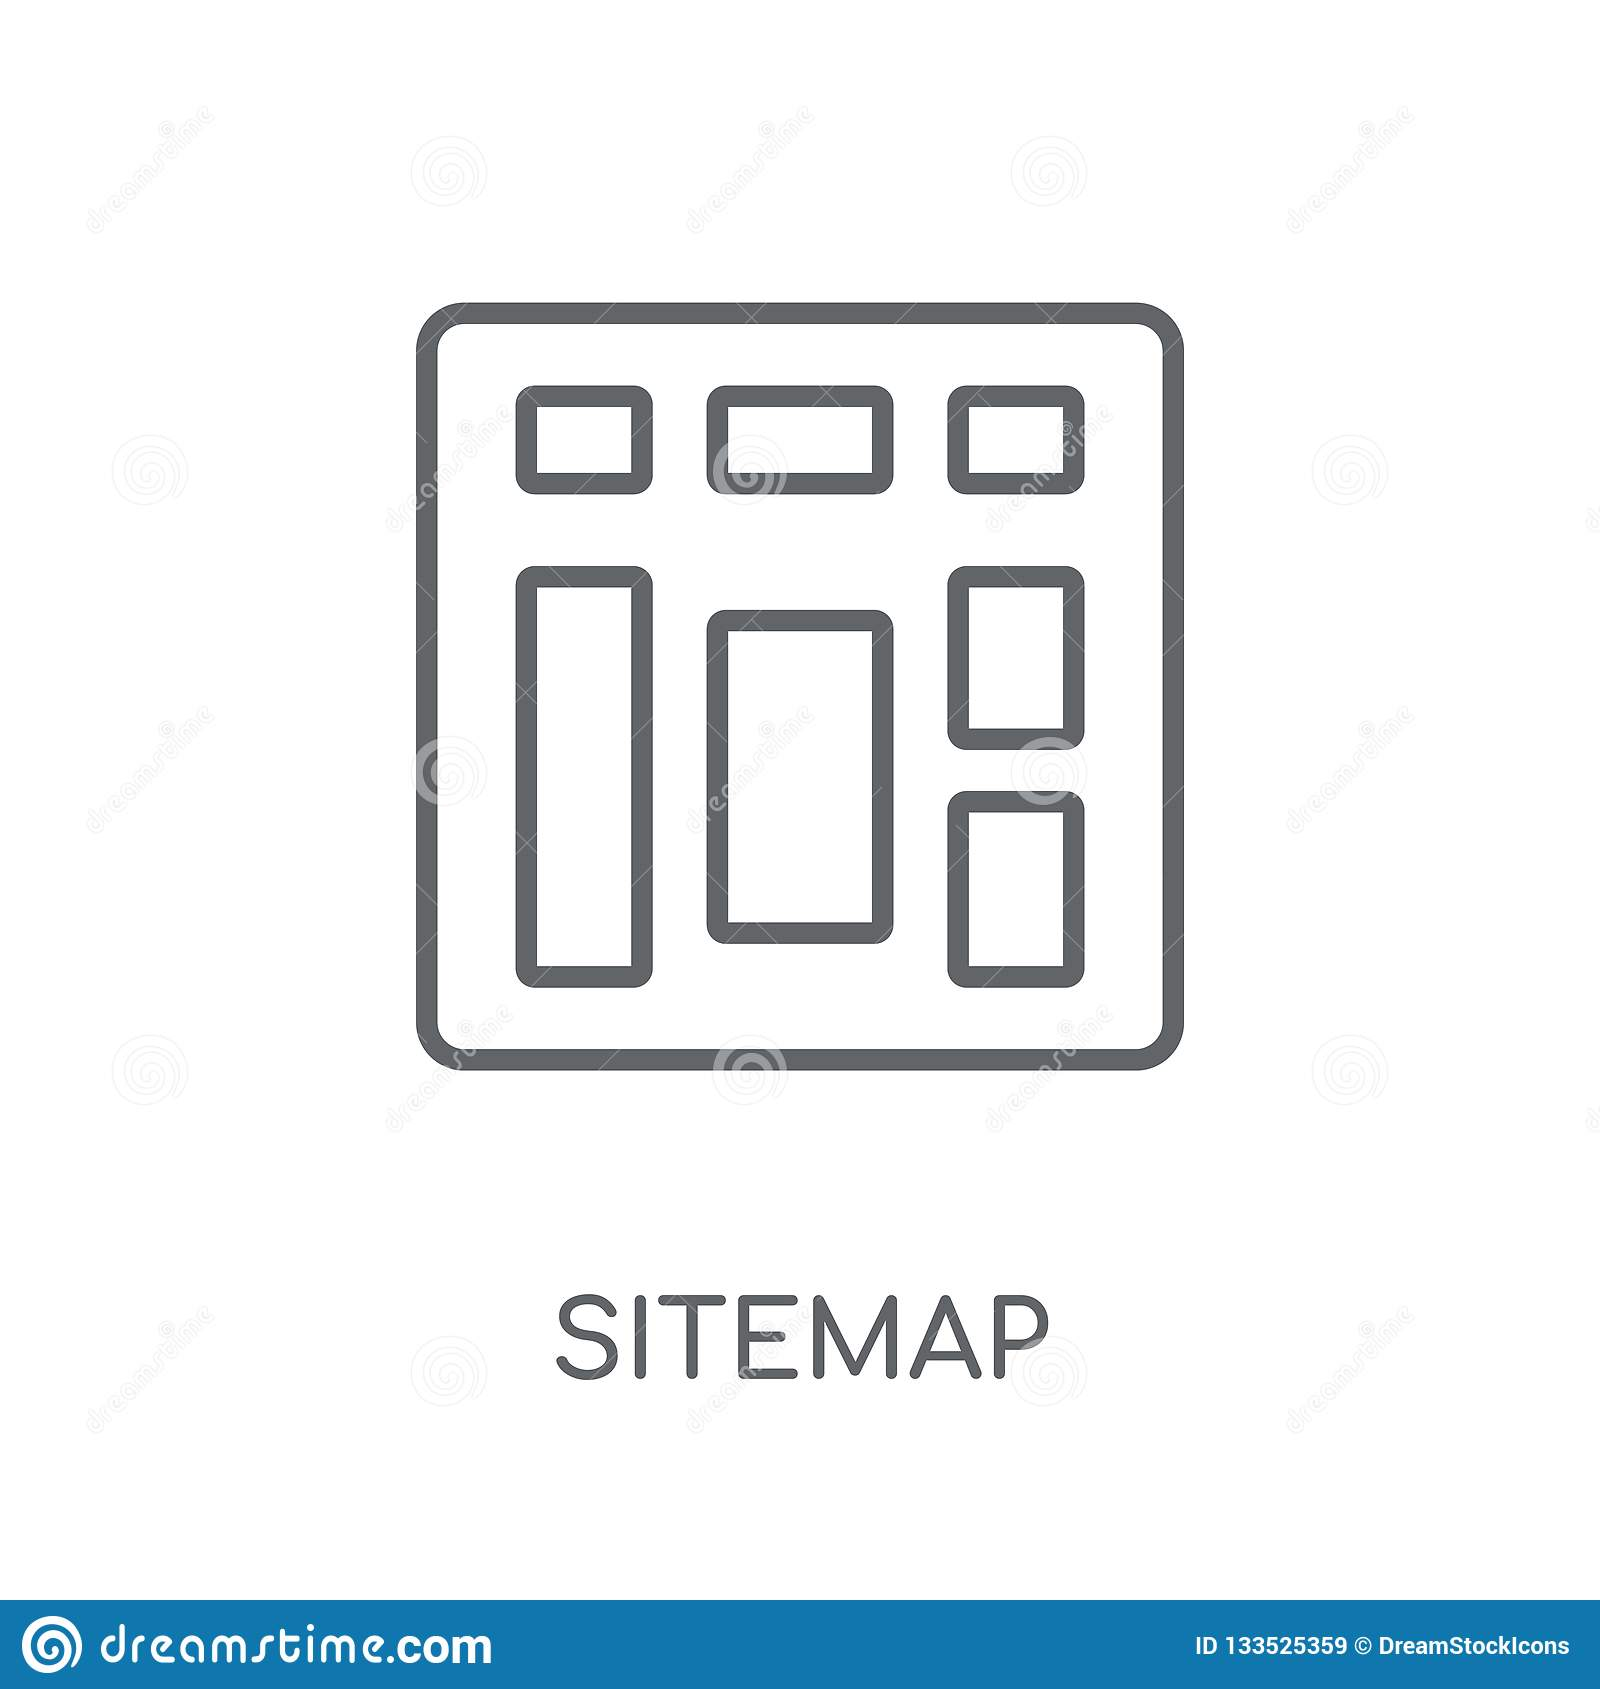 Sitemap linear icon. Modern outline Sitemap logo concept on whit